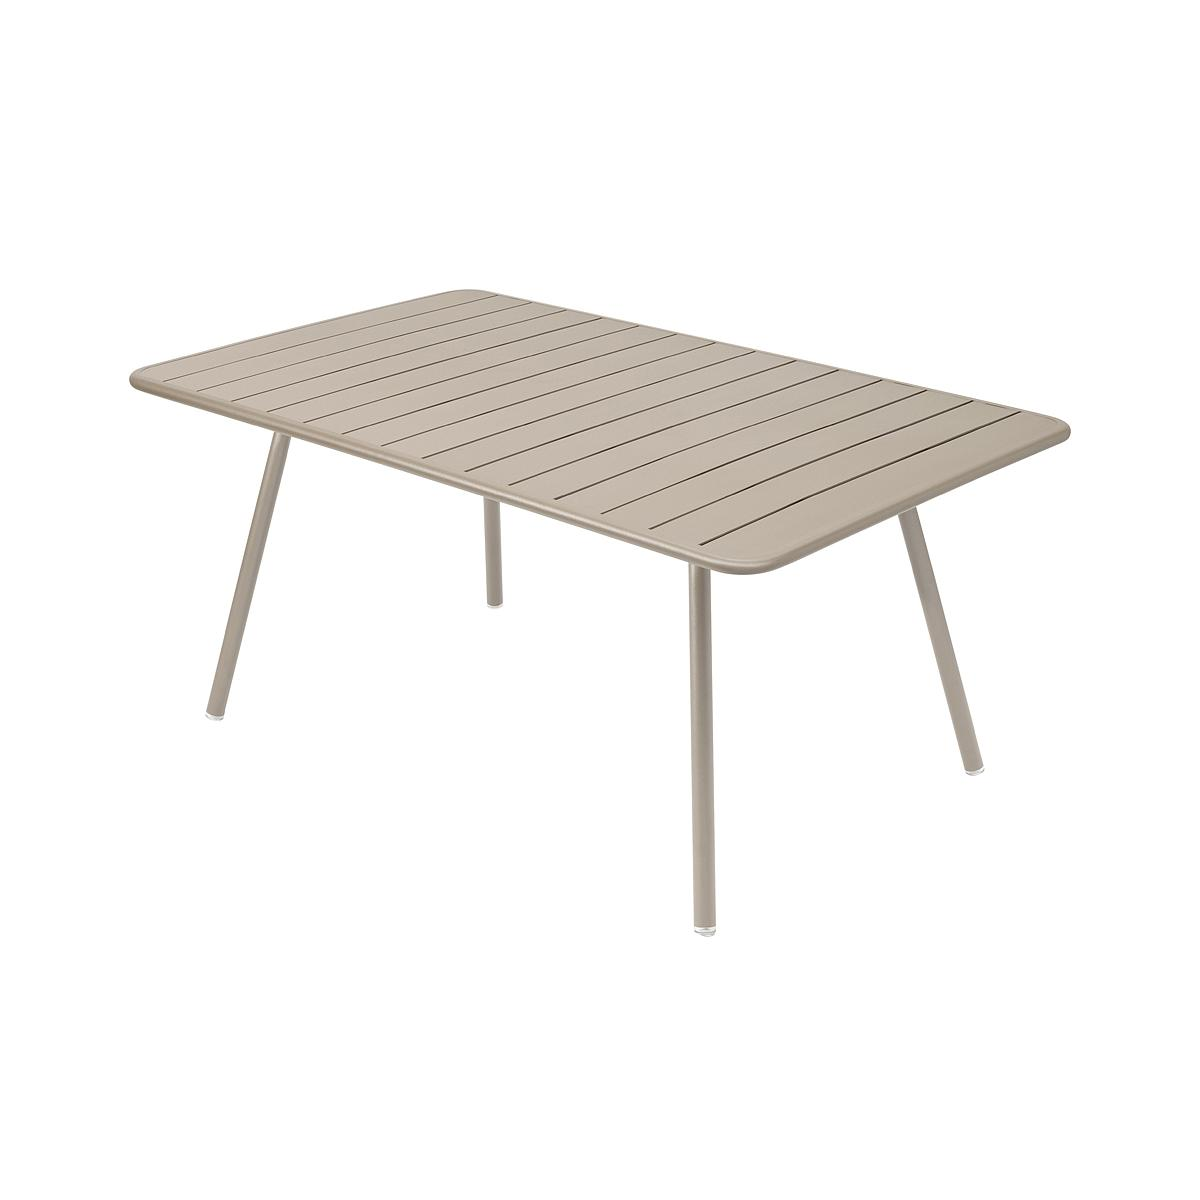 LUXEMBOURG by Fermob Table confort 6 muscade